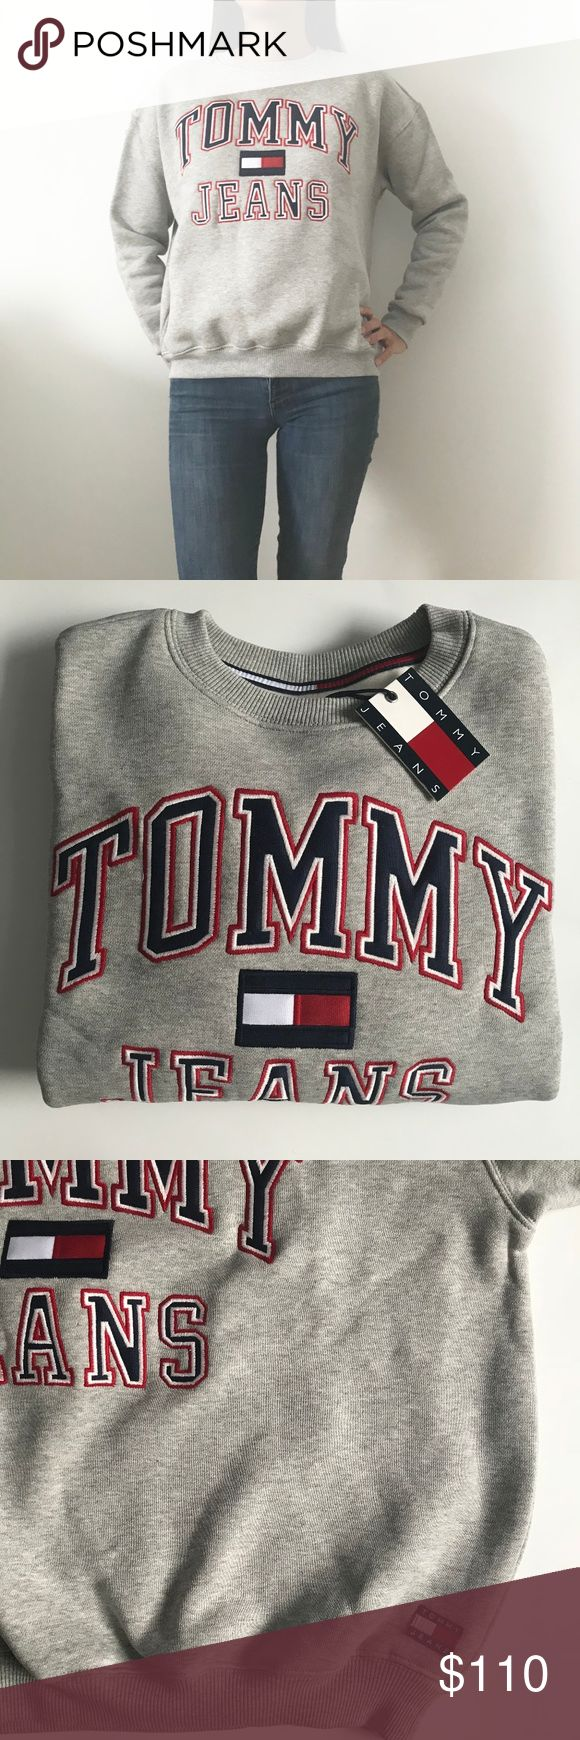 """⚡️PRICE DROP ⚡️Tommy Hilfiger grey Sweatshirt Sold out online! Classic Tommy Hilfiger sweatshirt for that retro look. New but """"vintage"""". So hot right now!  Size XS.  Chest: 25 inches across from armpit to armpit (laying flat). 23 inches in length from top of shoulder to bottom hem. See my other listings for this sweatshirt in Large (Navy) and Medium (Red). Tommy Hilfiger Tops Sweatshirts & Hoodies"""